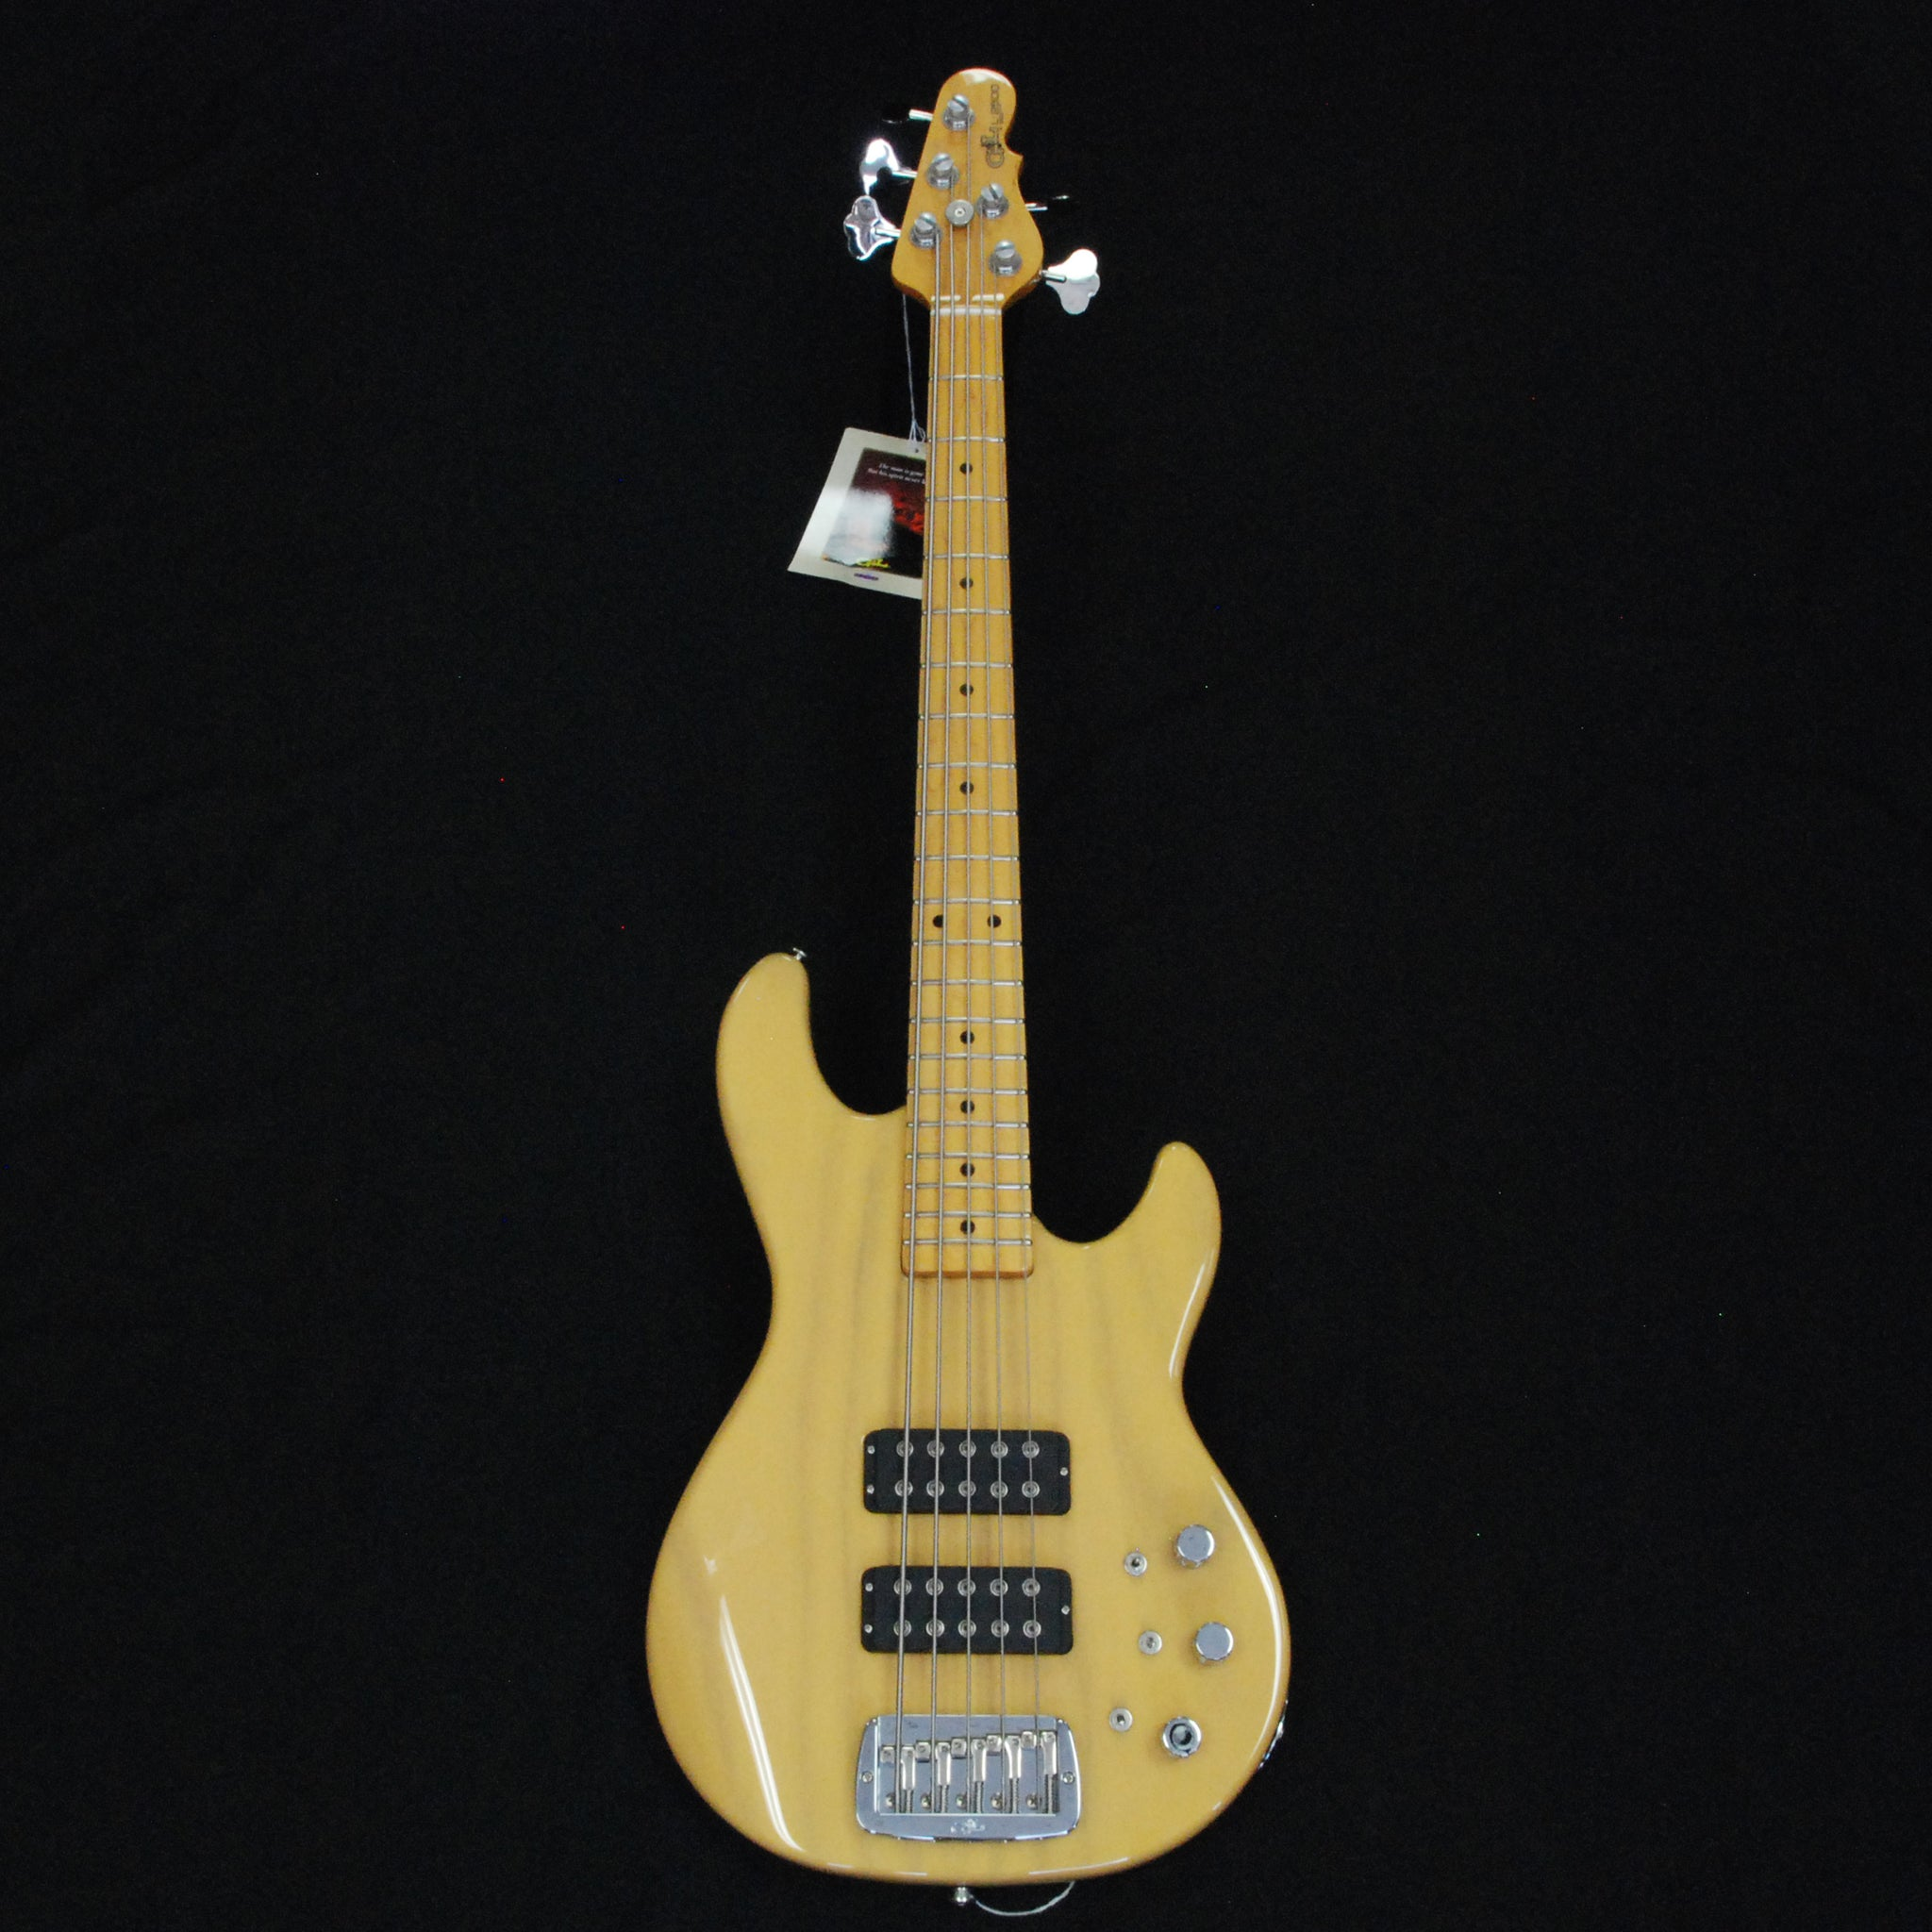 Shop online for G&L USA L2500 Custom USA 5 String Bass Guitar Butterscotch Blonde #CLF73664 today.  Now available for purchase from Midlothian Music of Orland Park, Illinois, USA